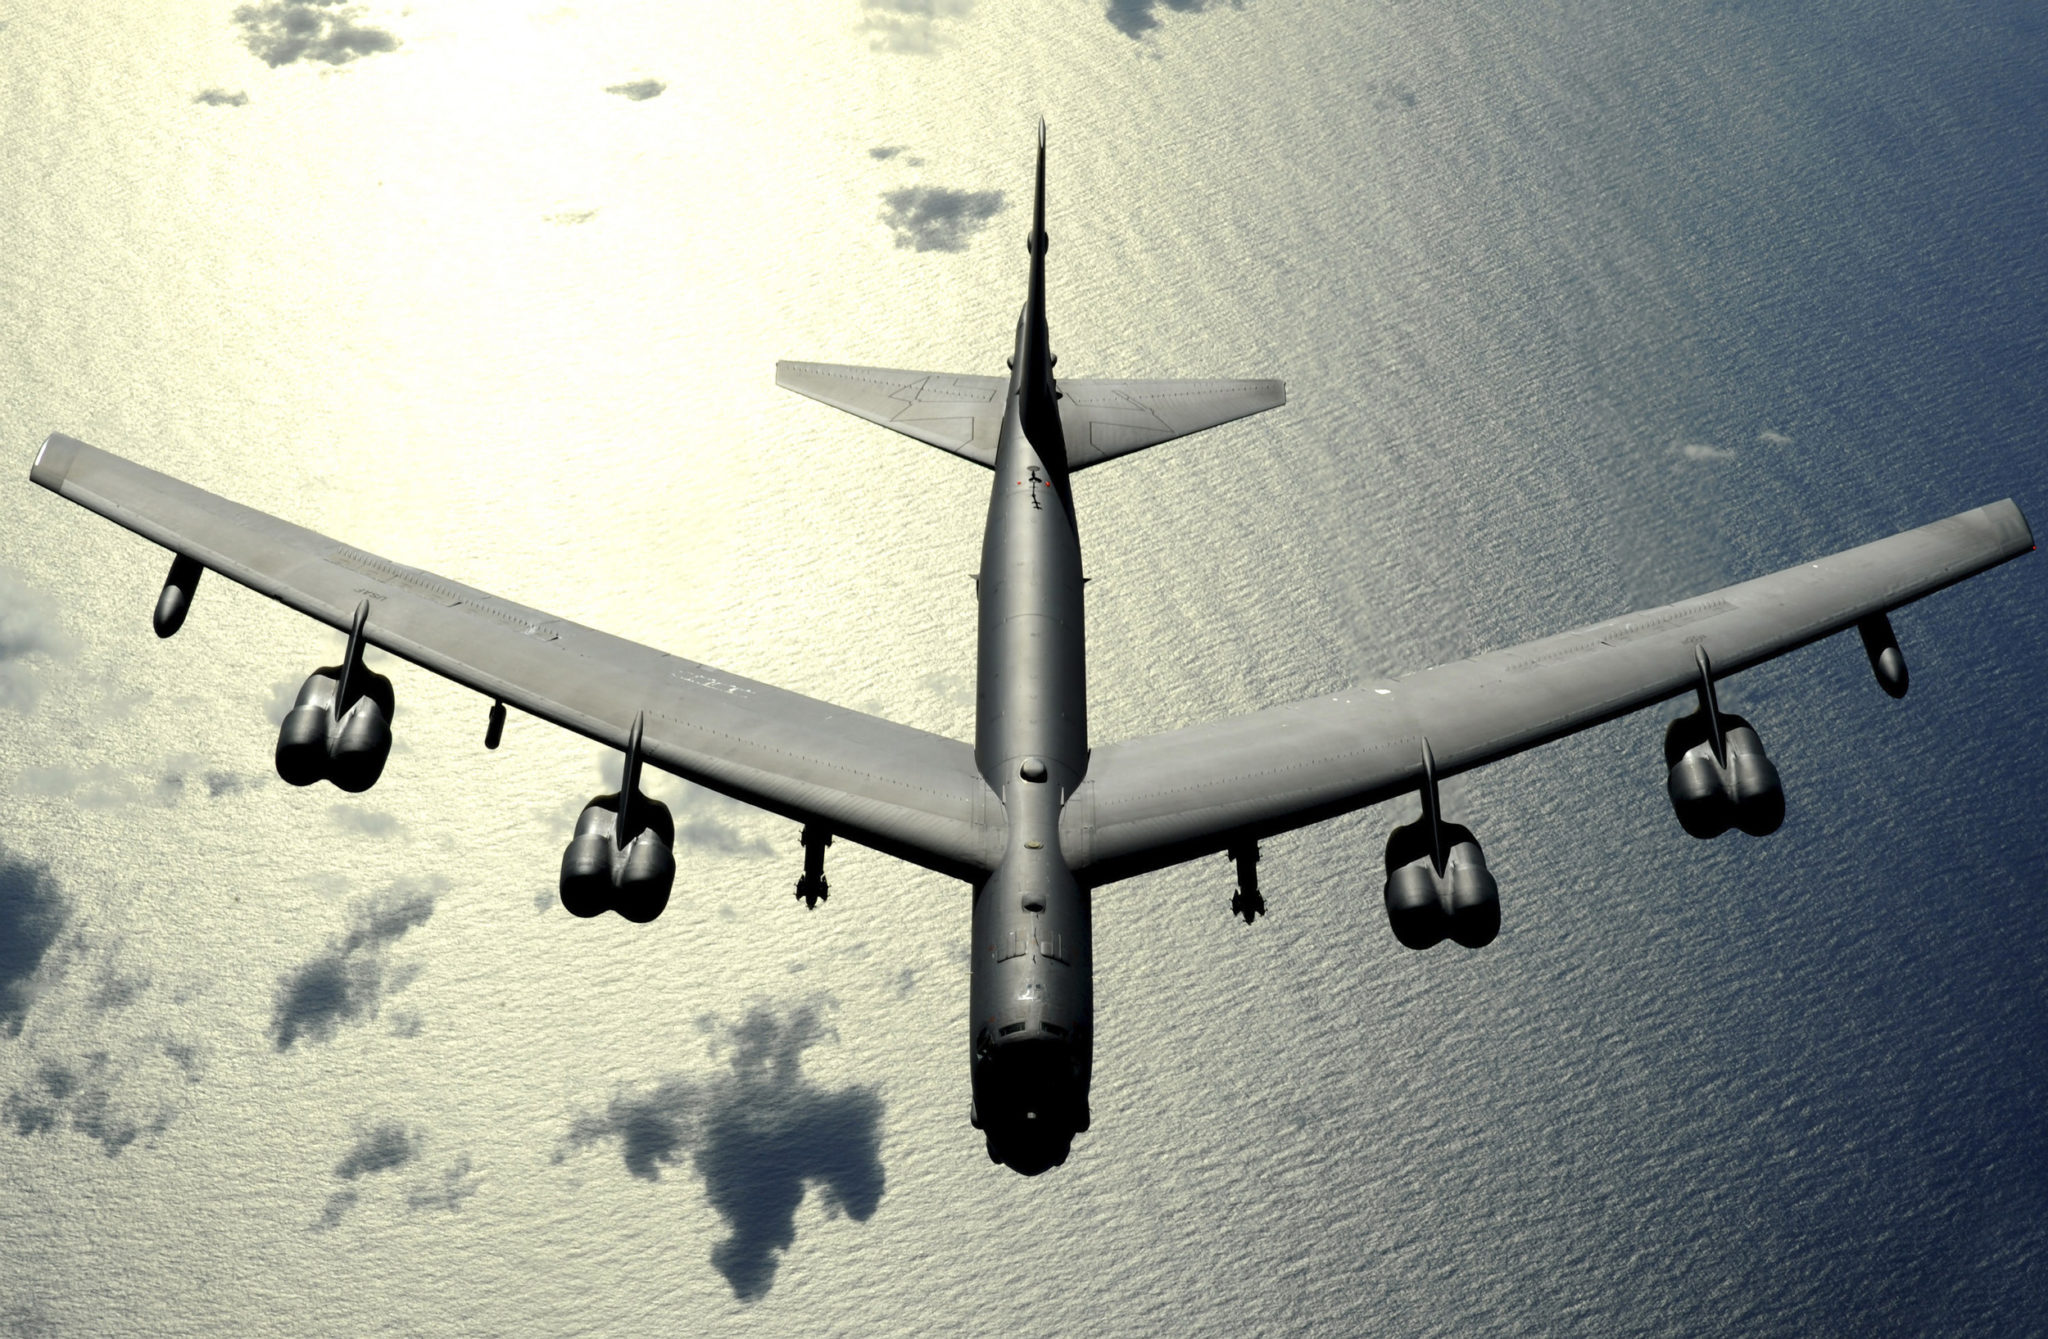 Bomber task force completes first CENTCOM mission as Iran warns US forces to leave region